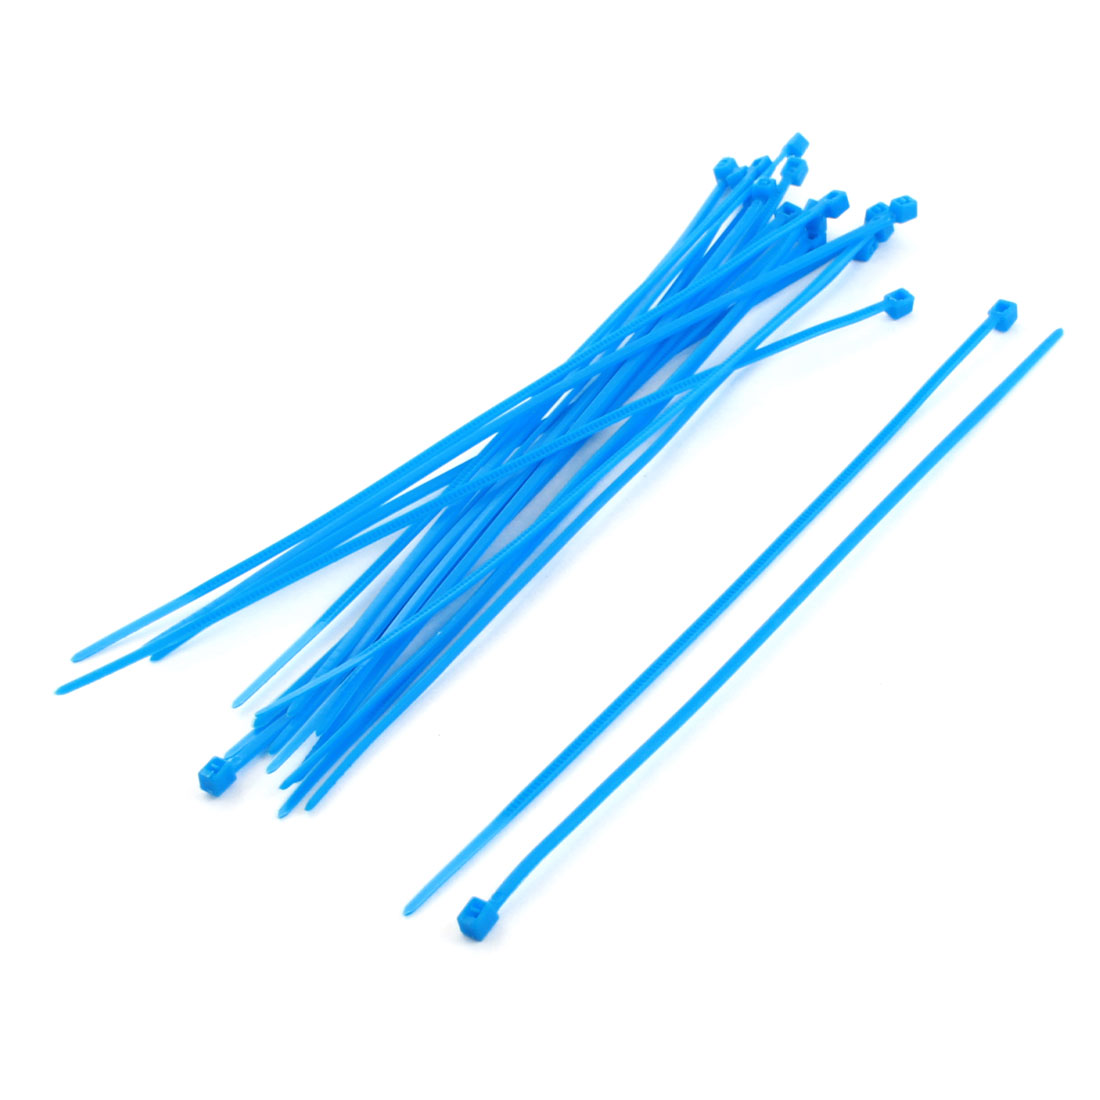 20Pcs 2mm Wide 150mm Length Nylon Cable Zip Ties Wire Cord Strap Blue